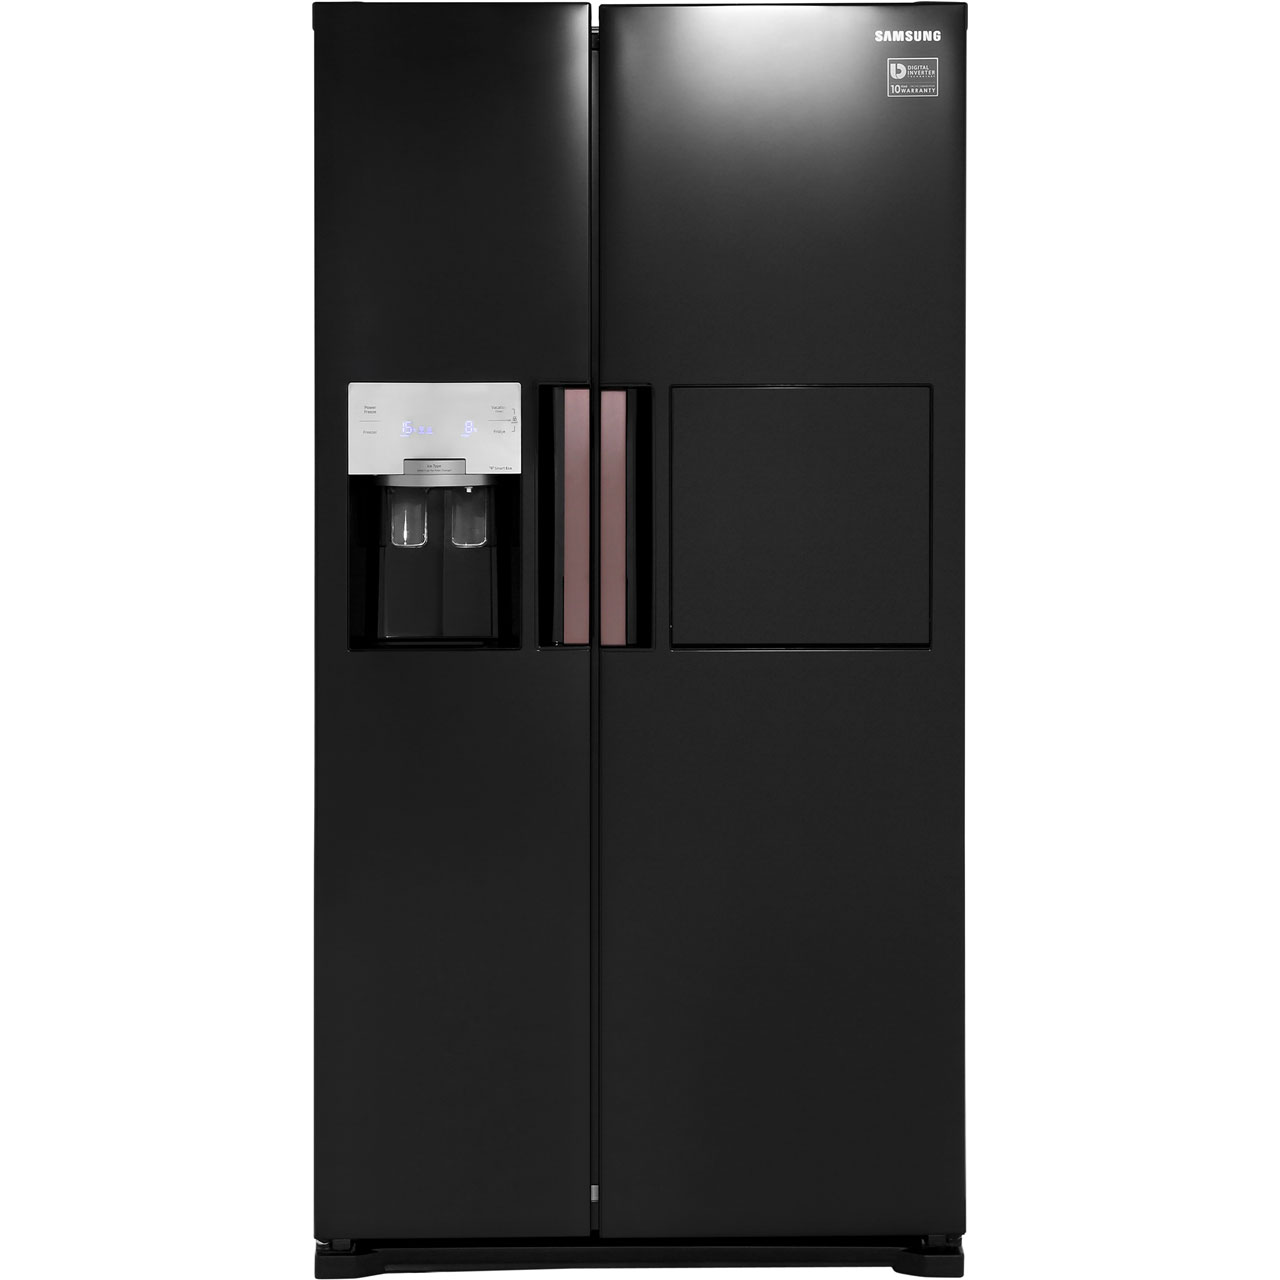 Samsung HSeries RS7677FHCBC Free Standing American Fridge Freezer in Black Gloss